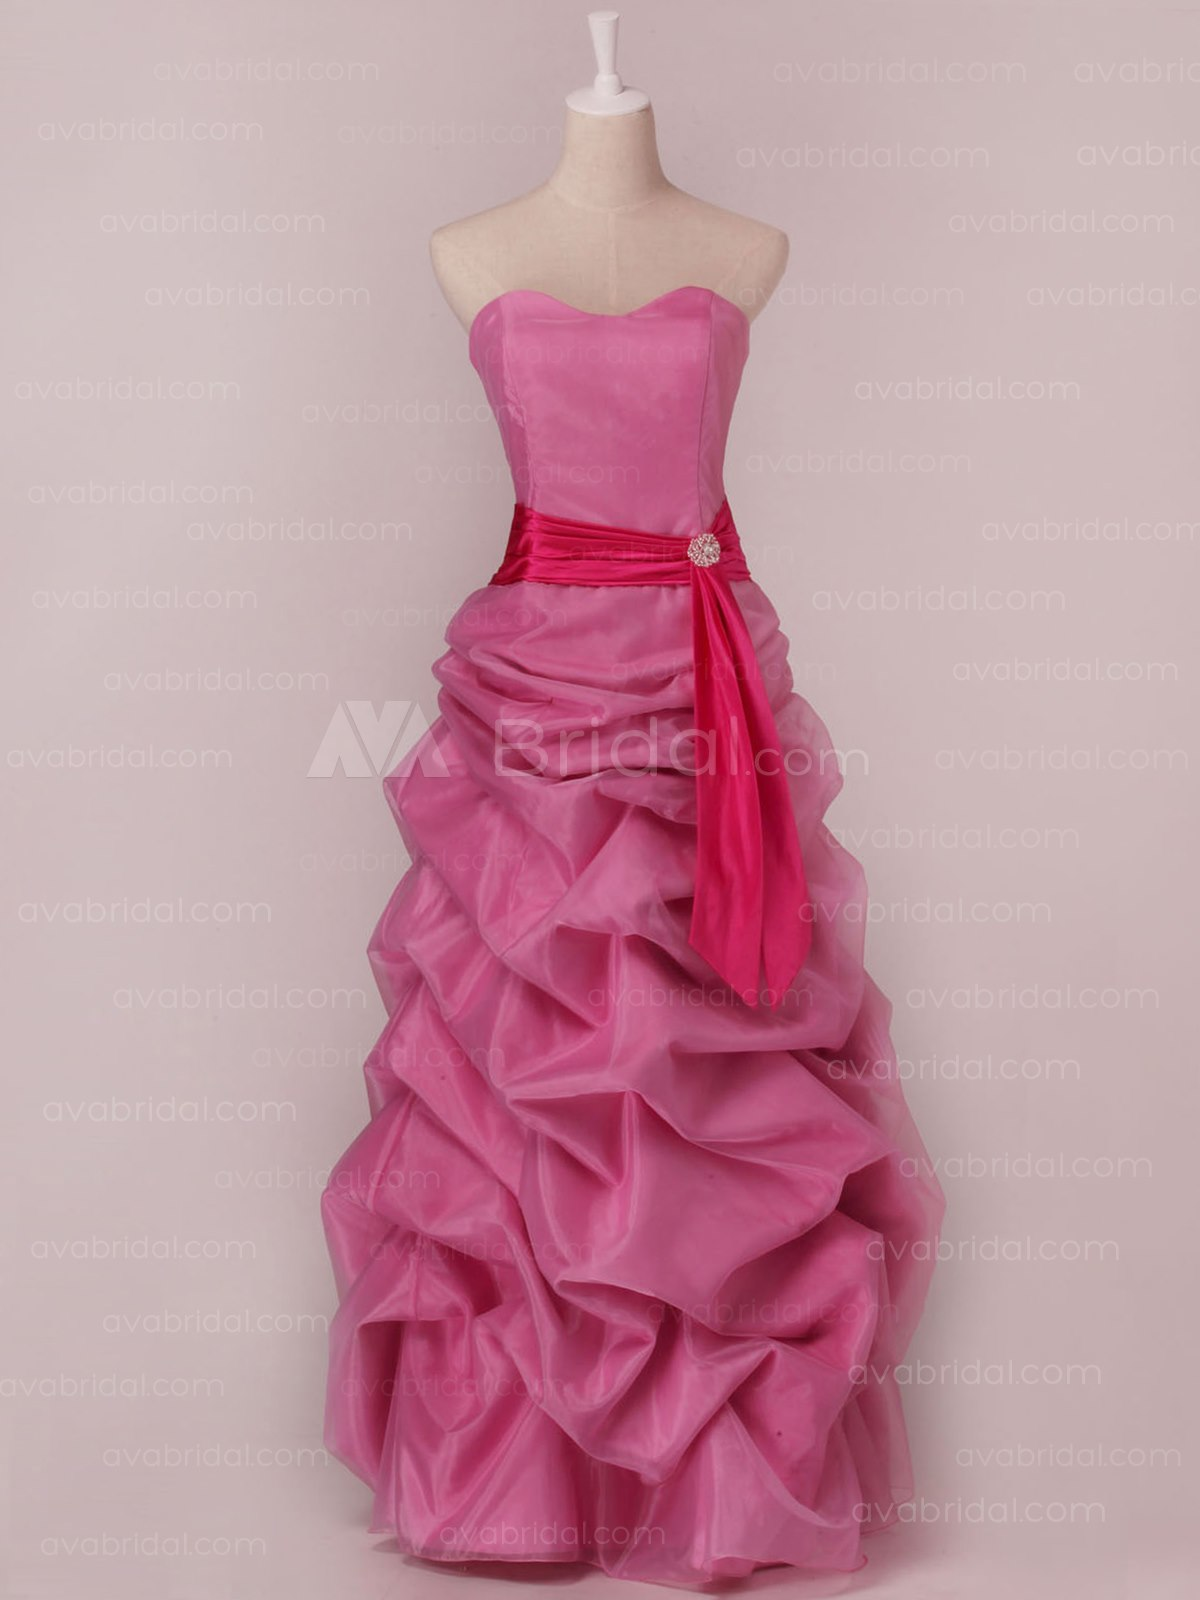 Glamorous Ruffle Skirt Organza Bridesmaid Dress B453-Front